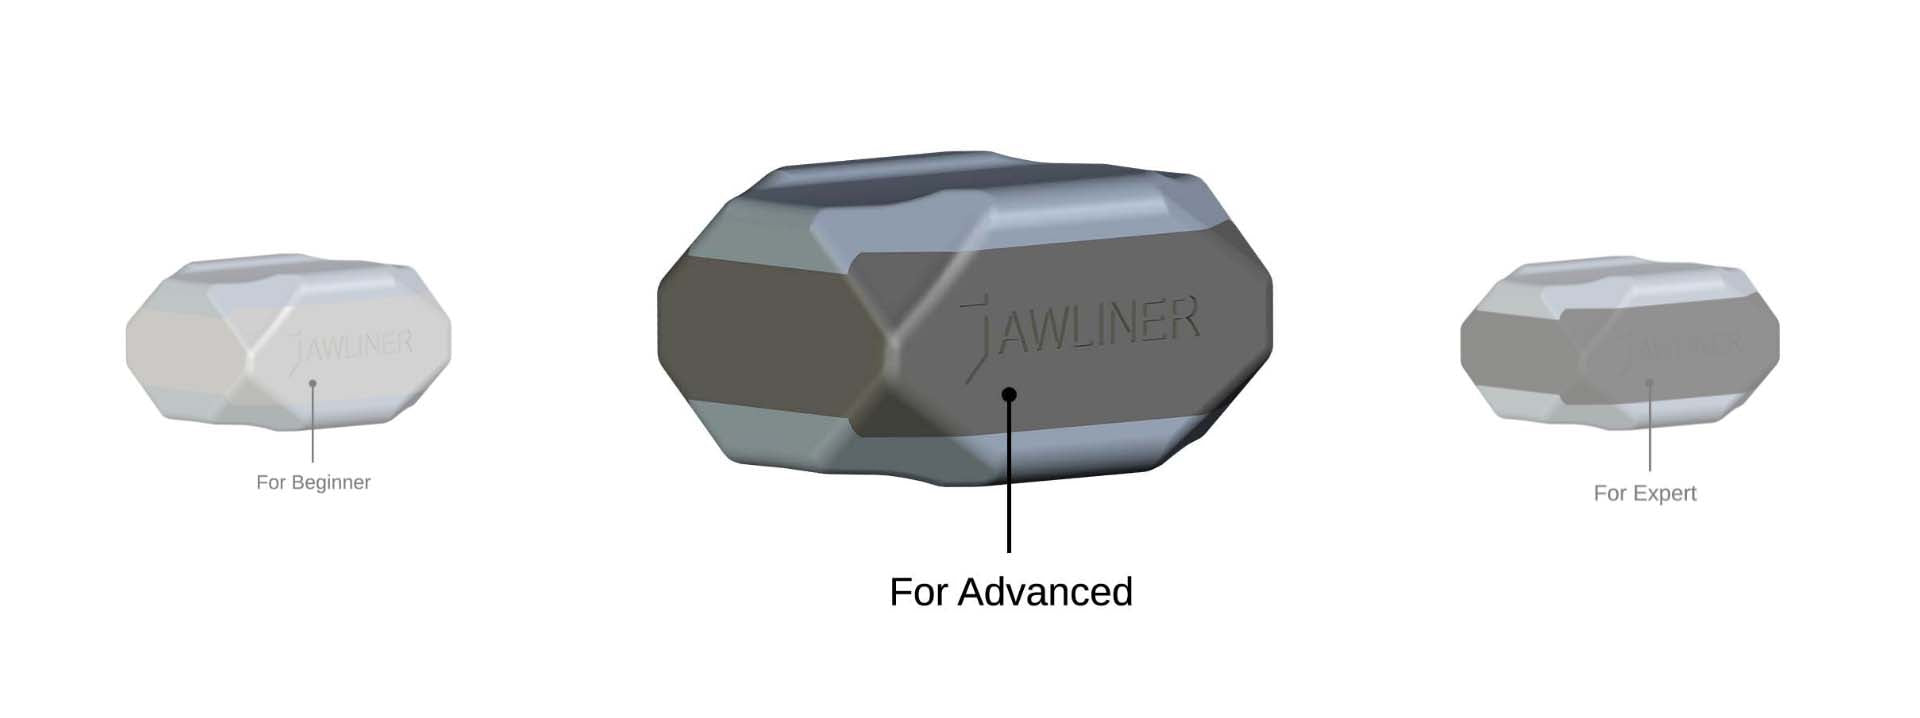 the picture shows the jawliner 3.0 advanced and vs. the jawliner 3.0 beginner vs. the jawliner 3.0 expert